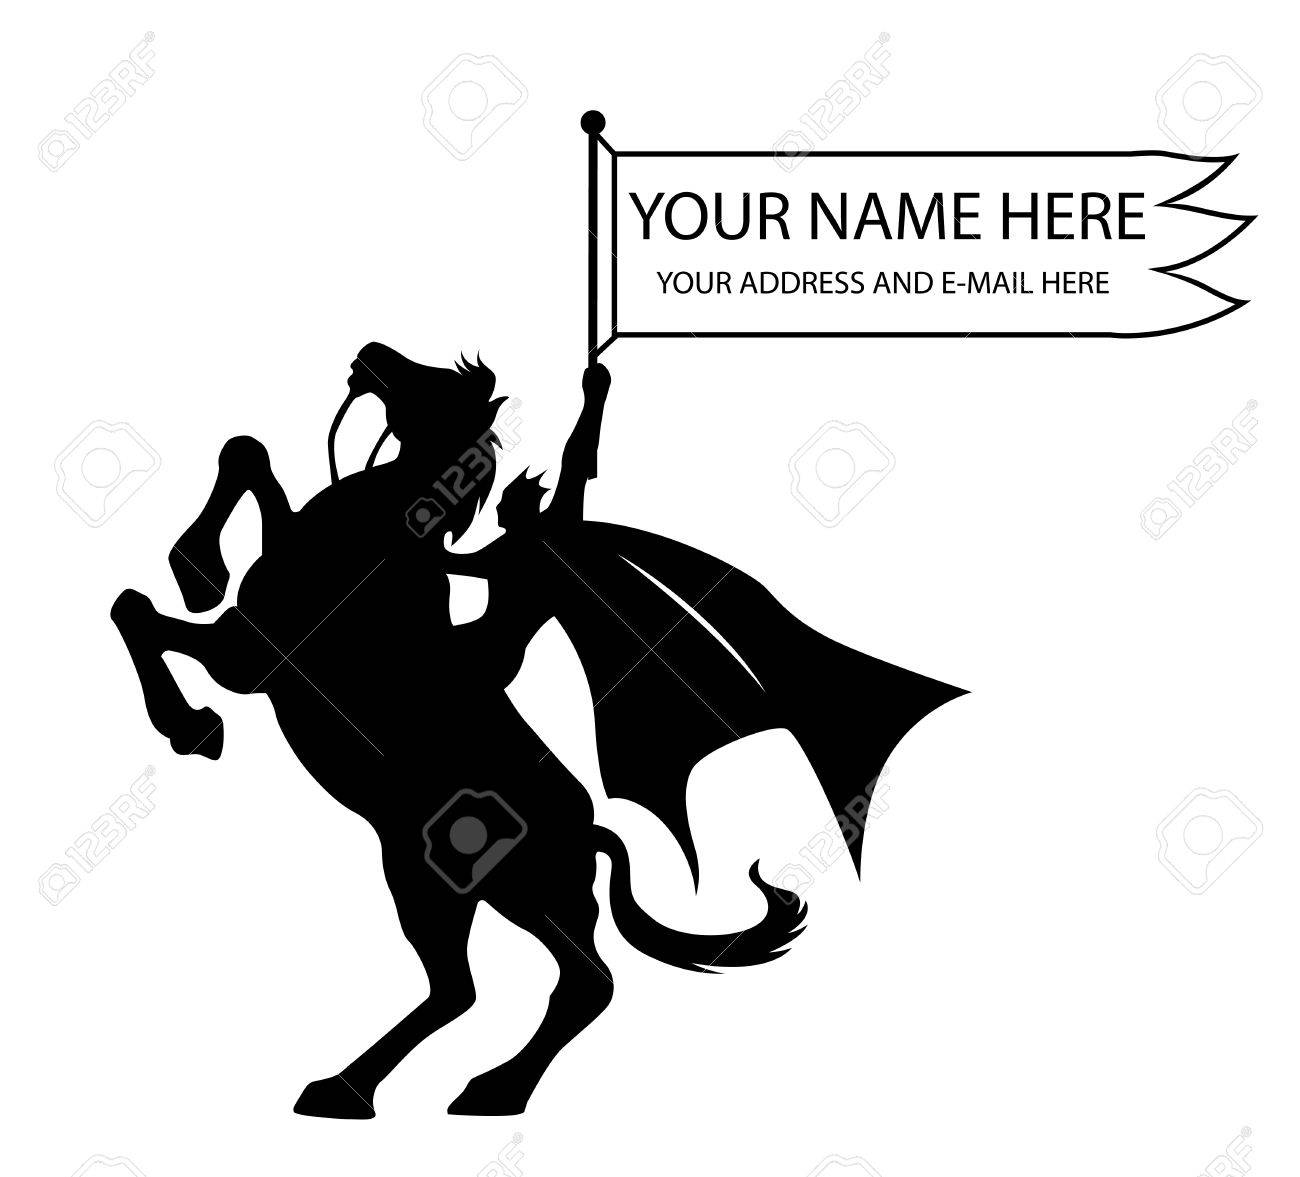 King Riding A Horse Pose And His Hand Holding A Flag Royalty Free Cliparts Vectors And Stock Illustration Image 31463210